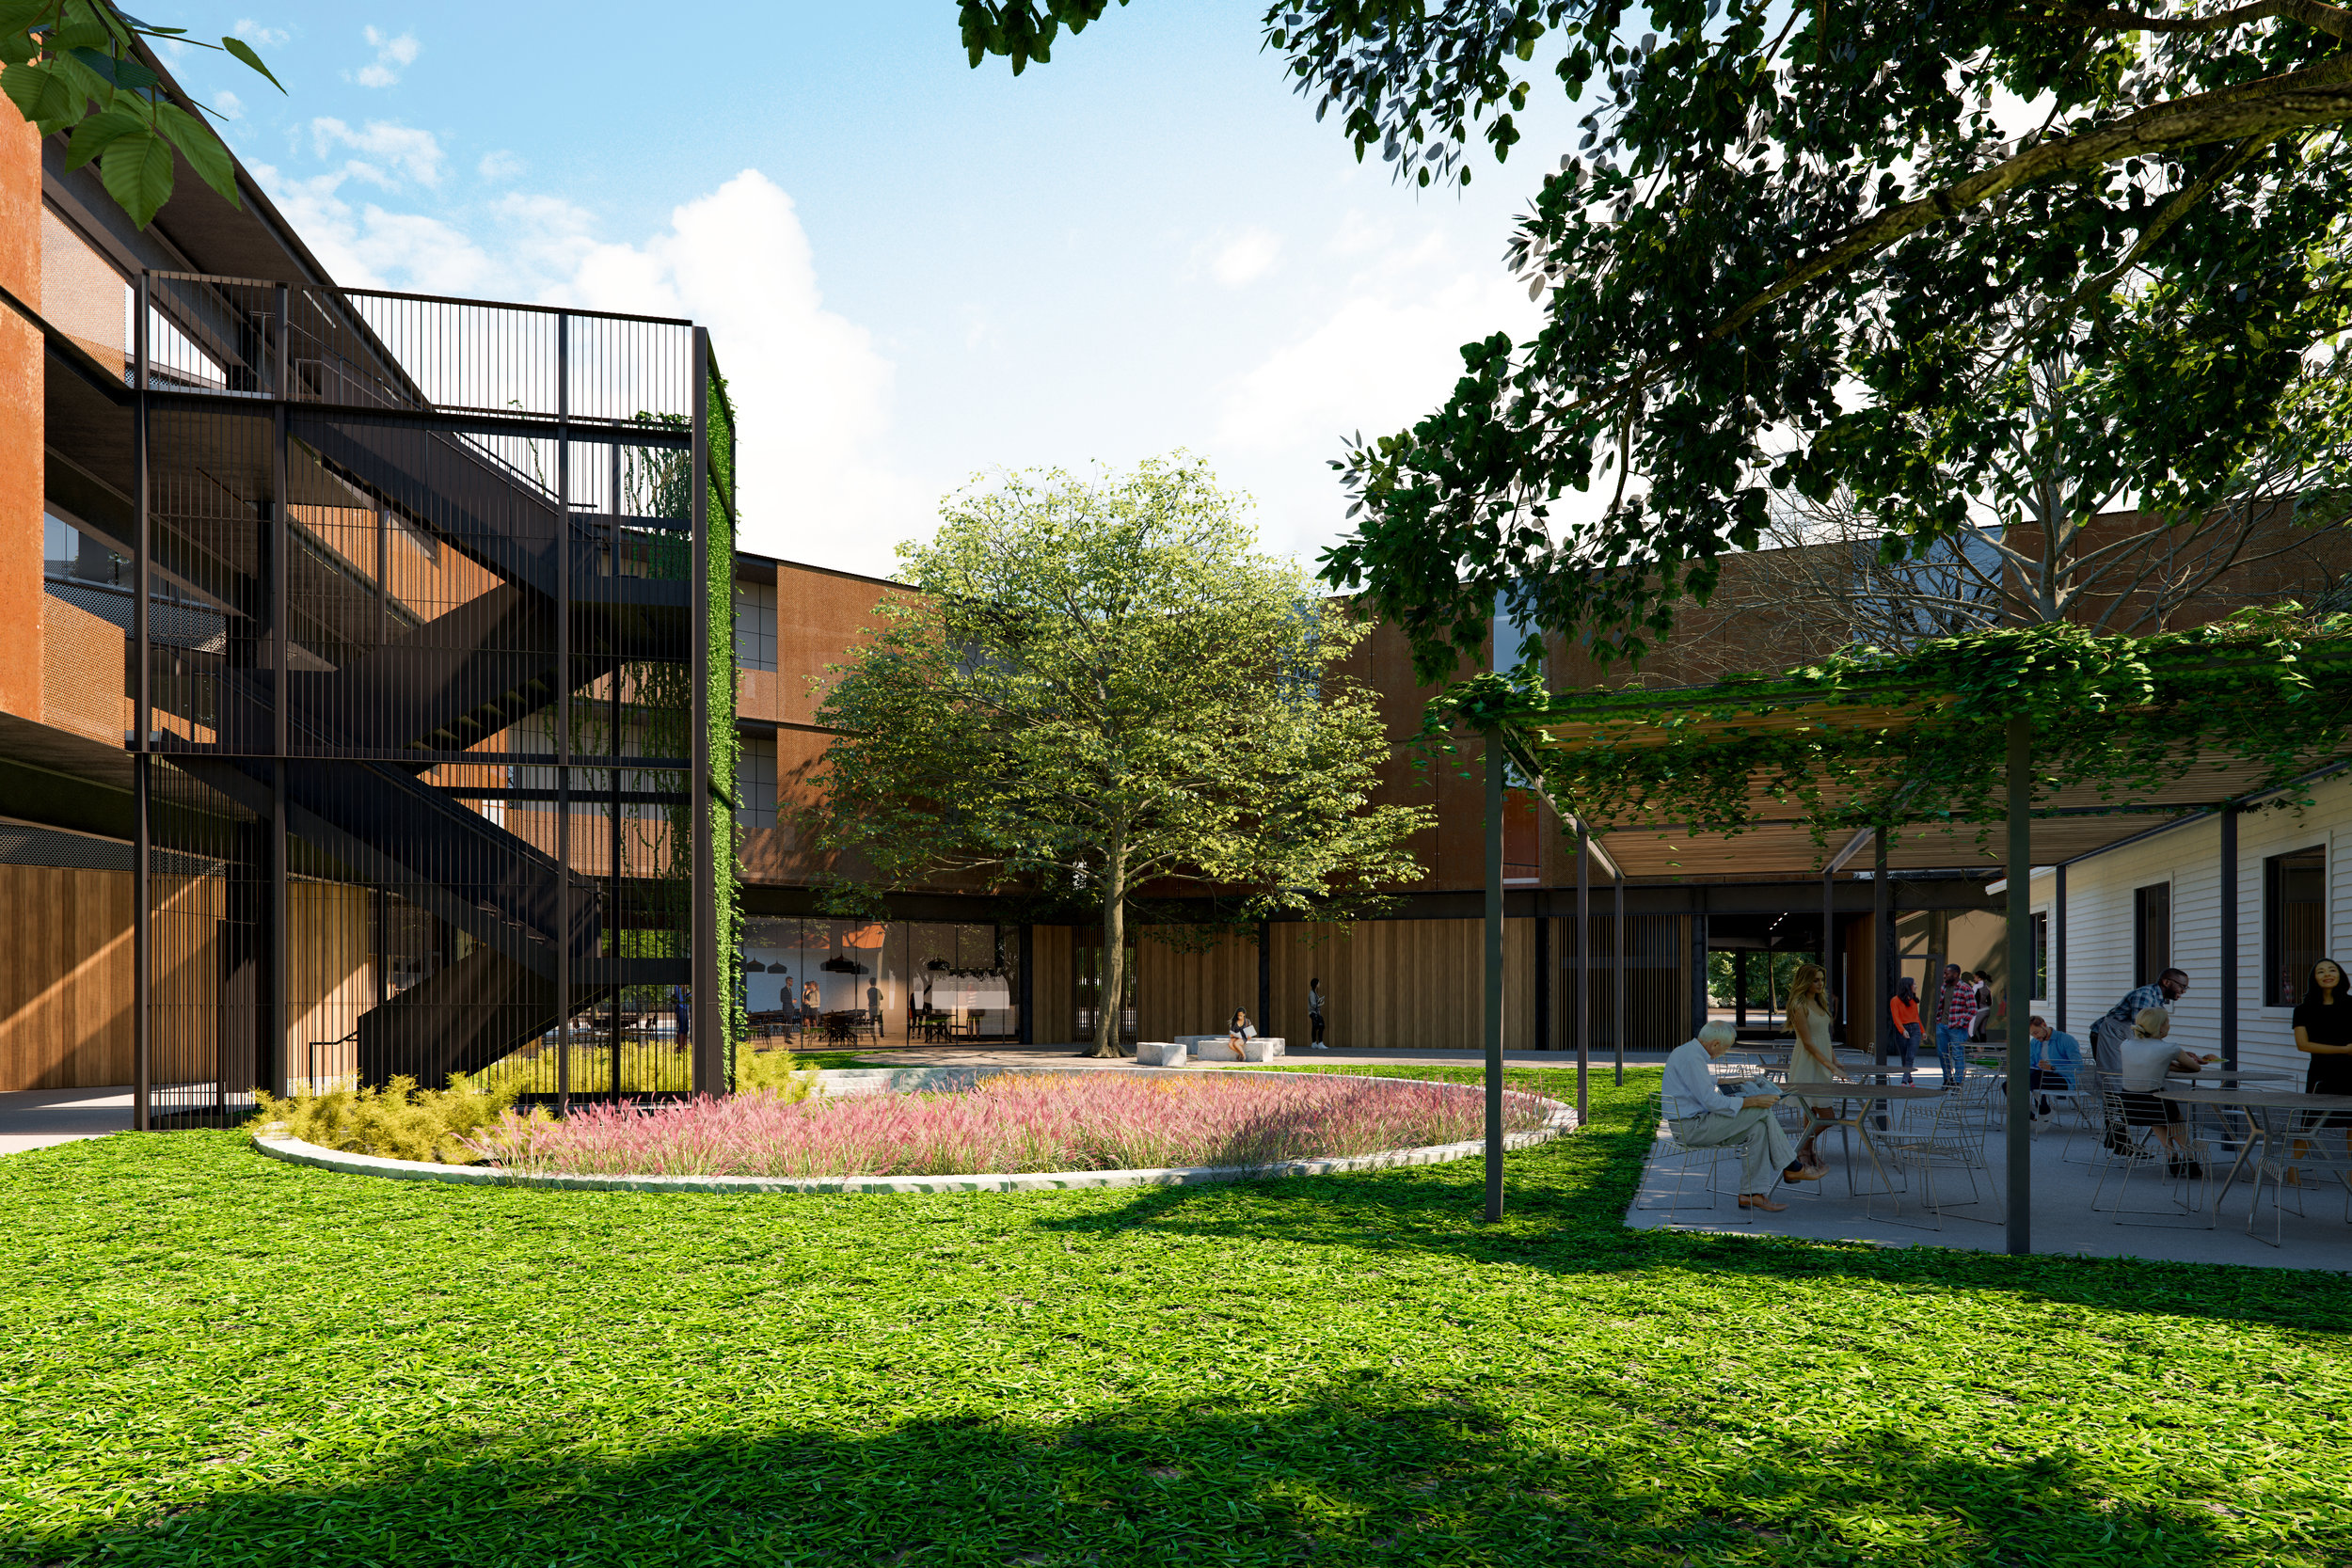 180404_Bercy Chen Studio_Shady Lane Offices_Courtyard 04.jpg